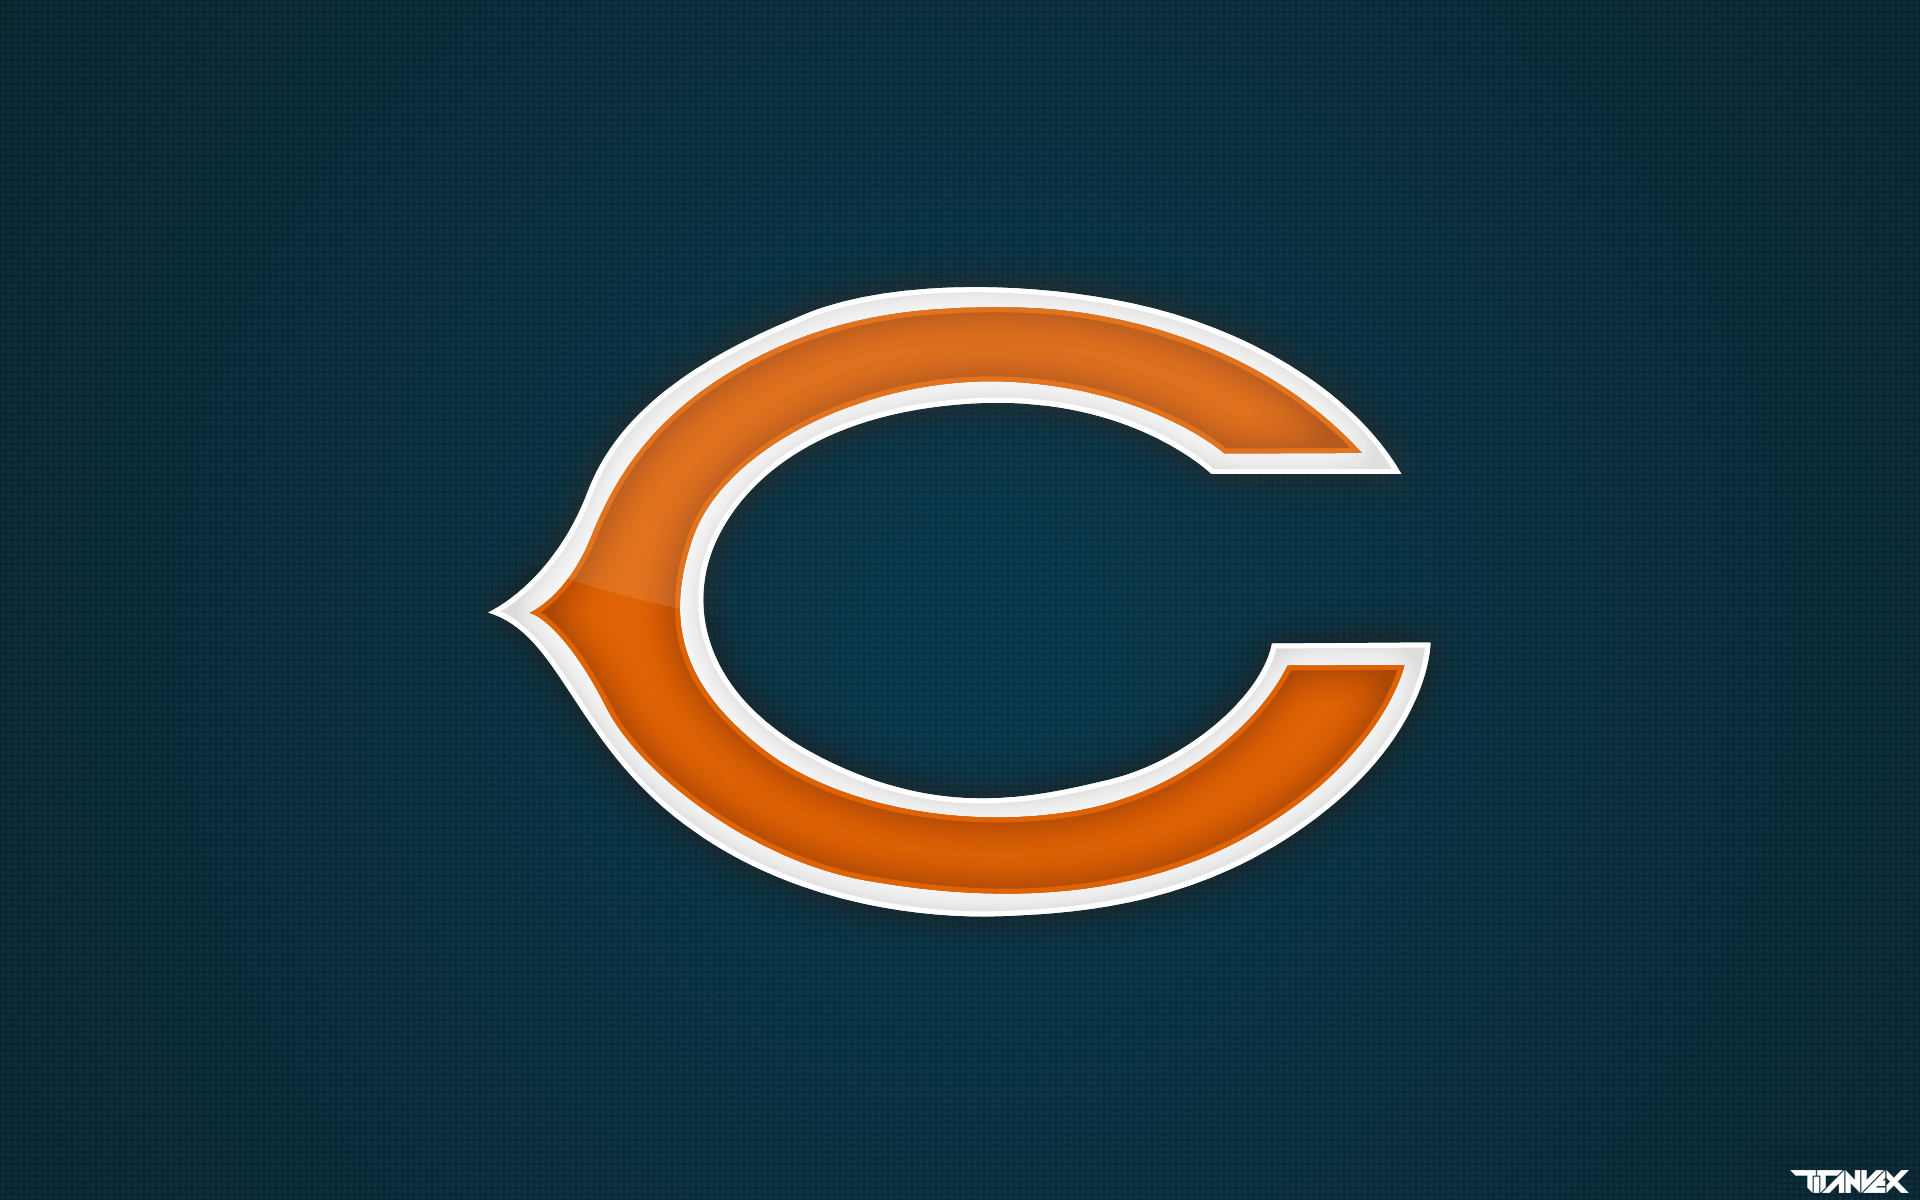 Chicago Bears wallpaper desktop wallpaper Chicago Bears wallpapers 1920x1200